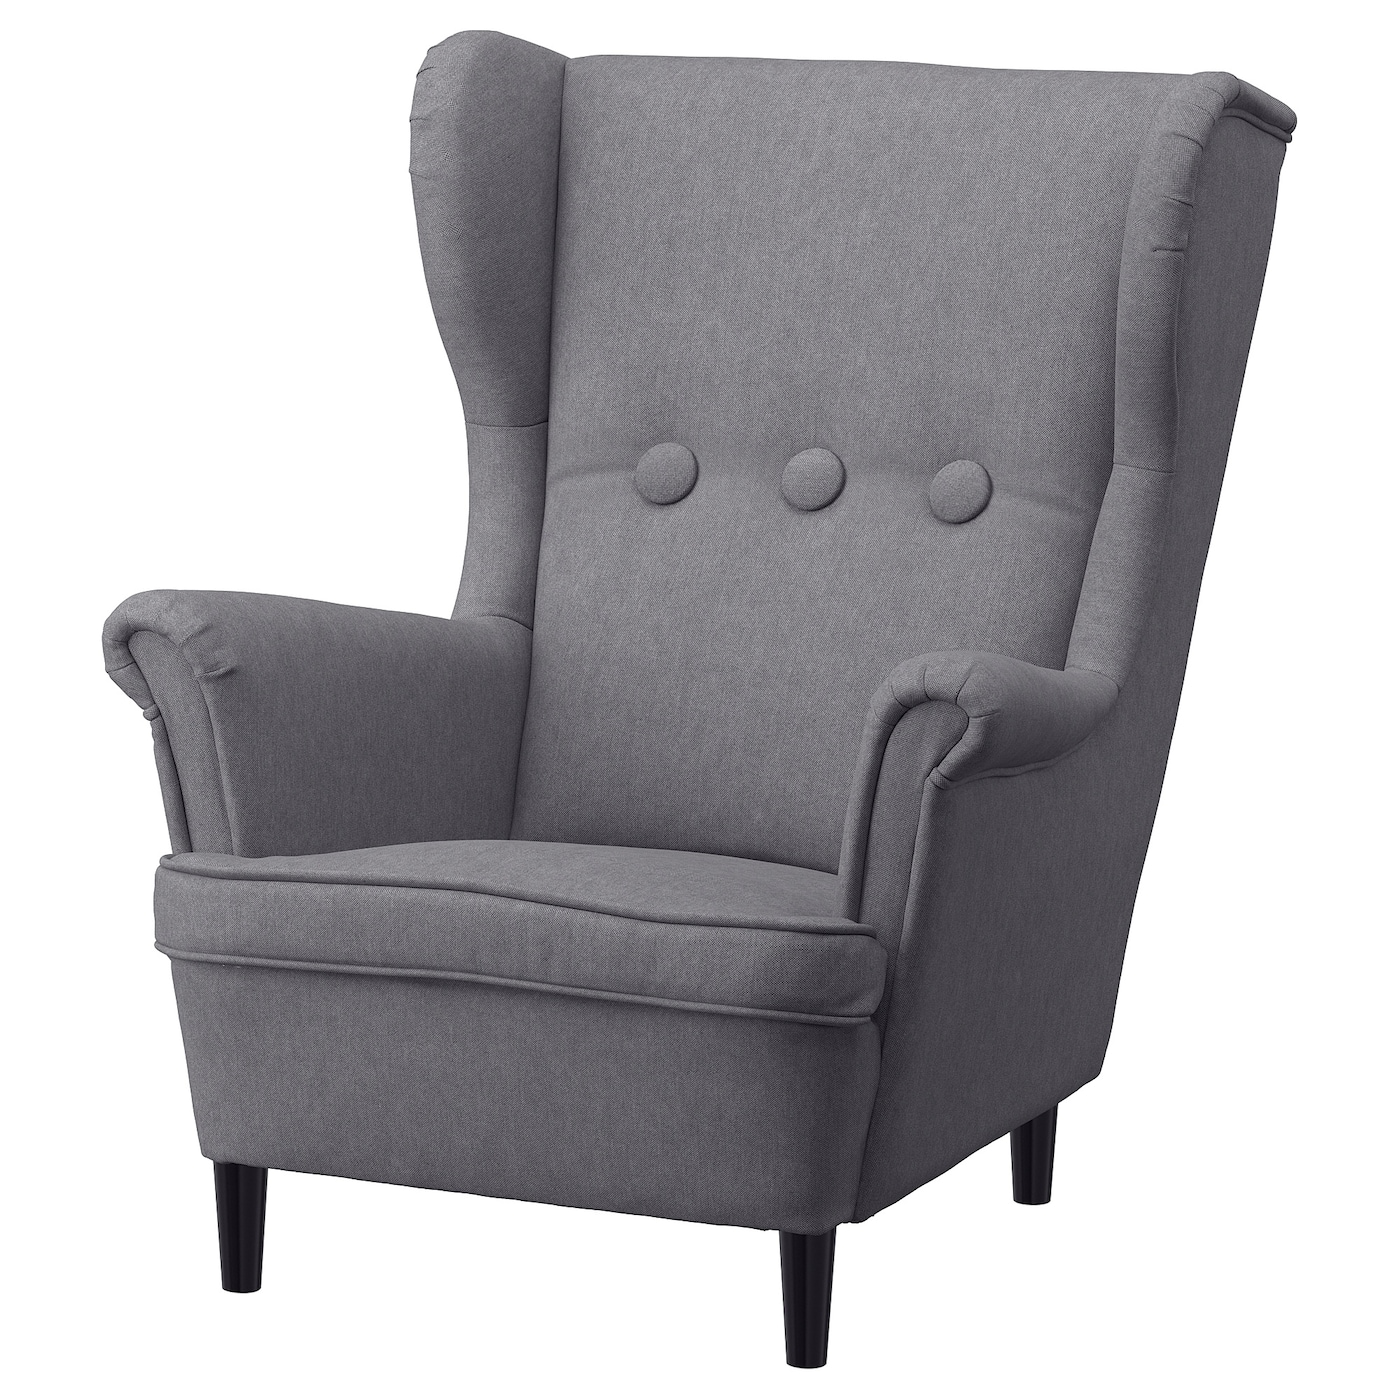 STRANDMON Children's armchair Vissle grey